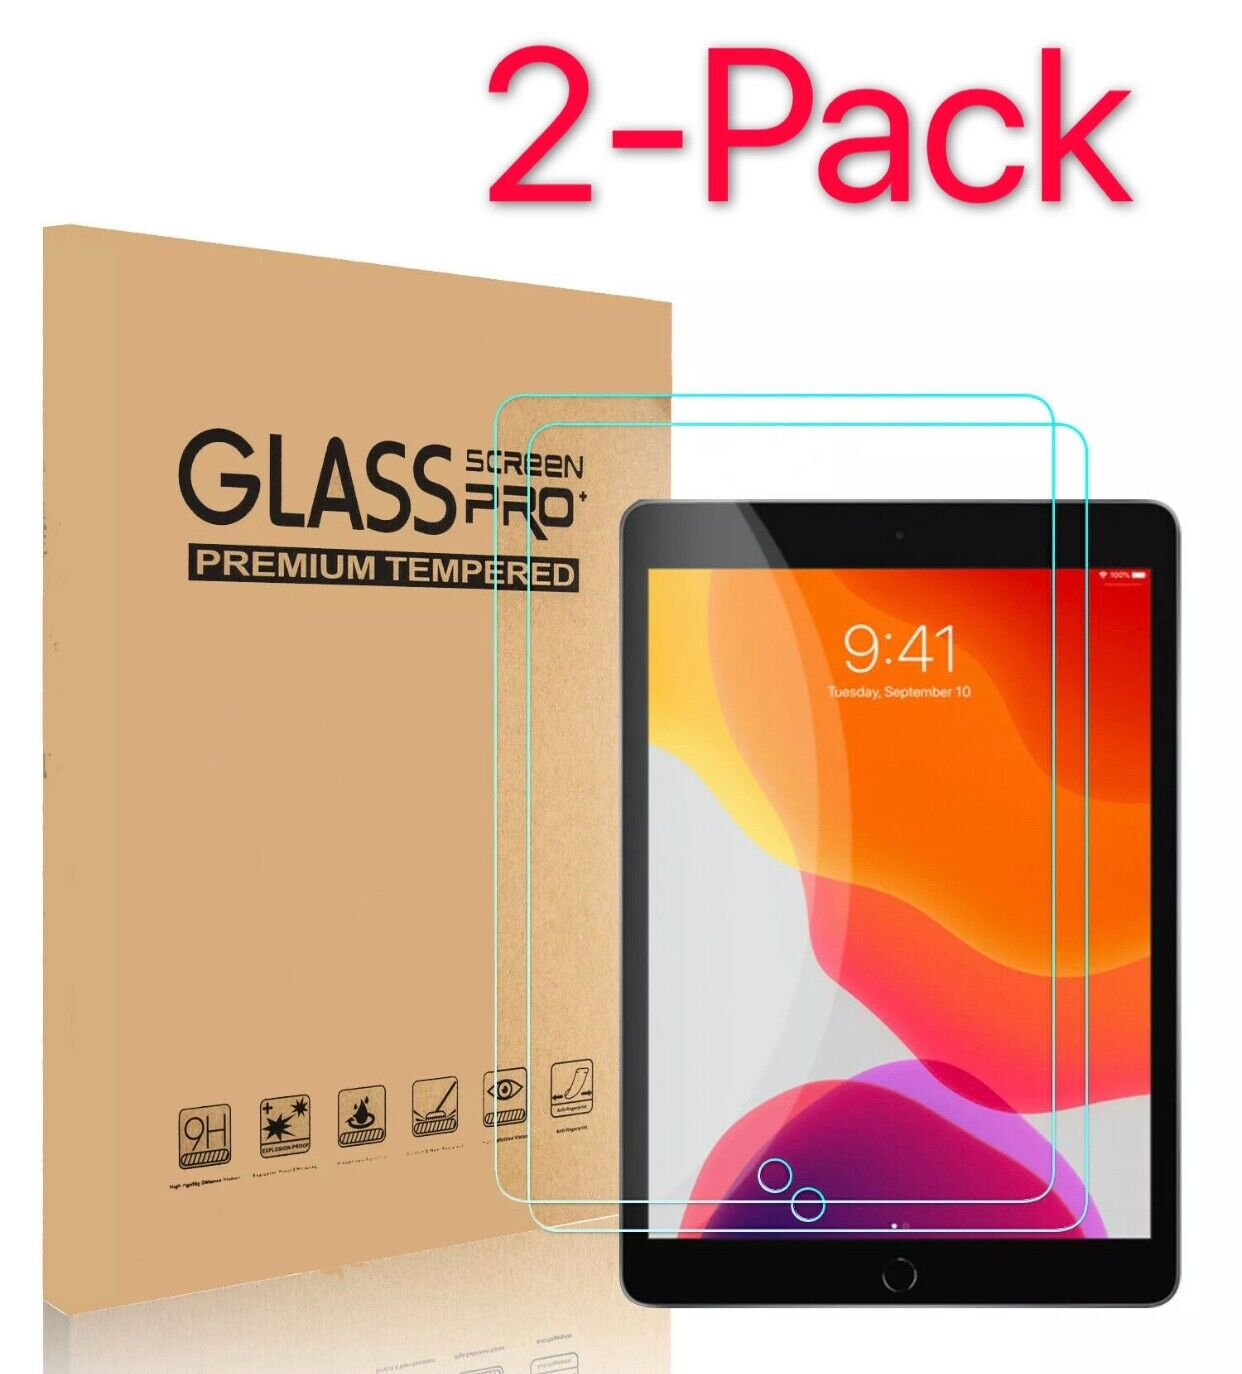 [2-Pack] Tempered GLASS Screen Protector for Apple iPad 6th Generation 2018 Unbranded Does Not Apply